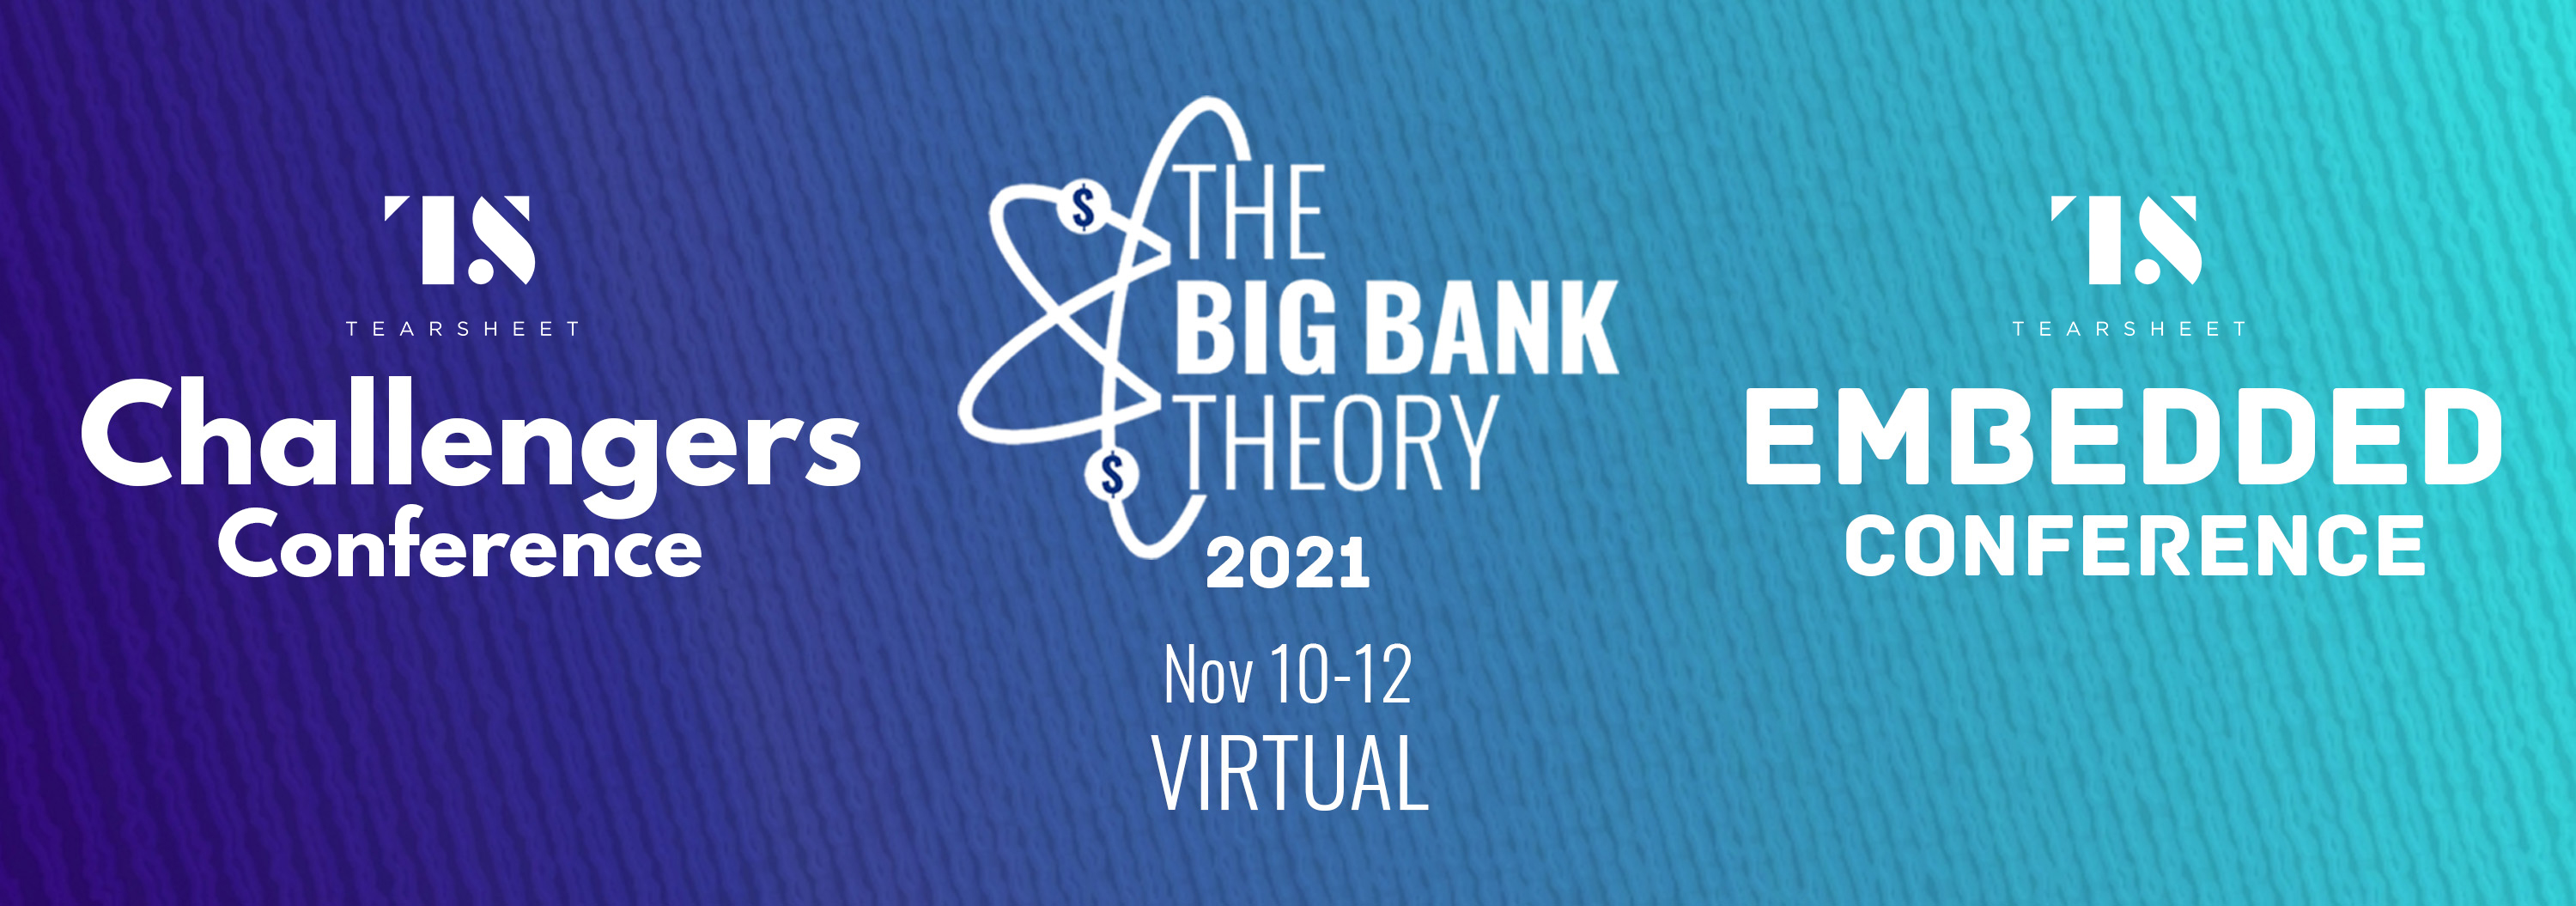 The Big Bank Theory by Tearsheet